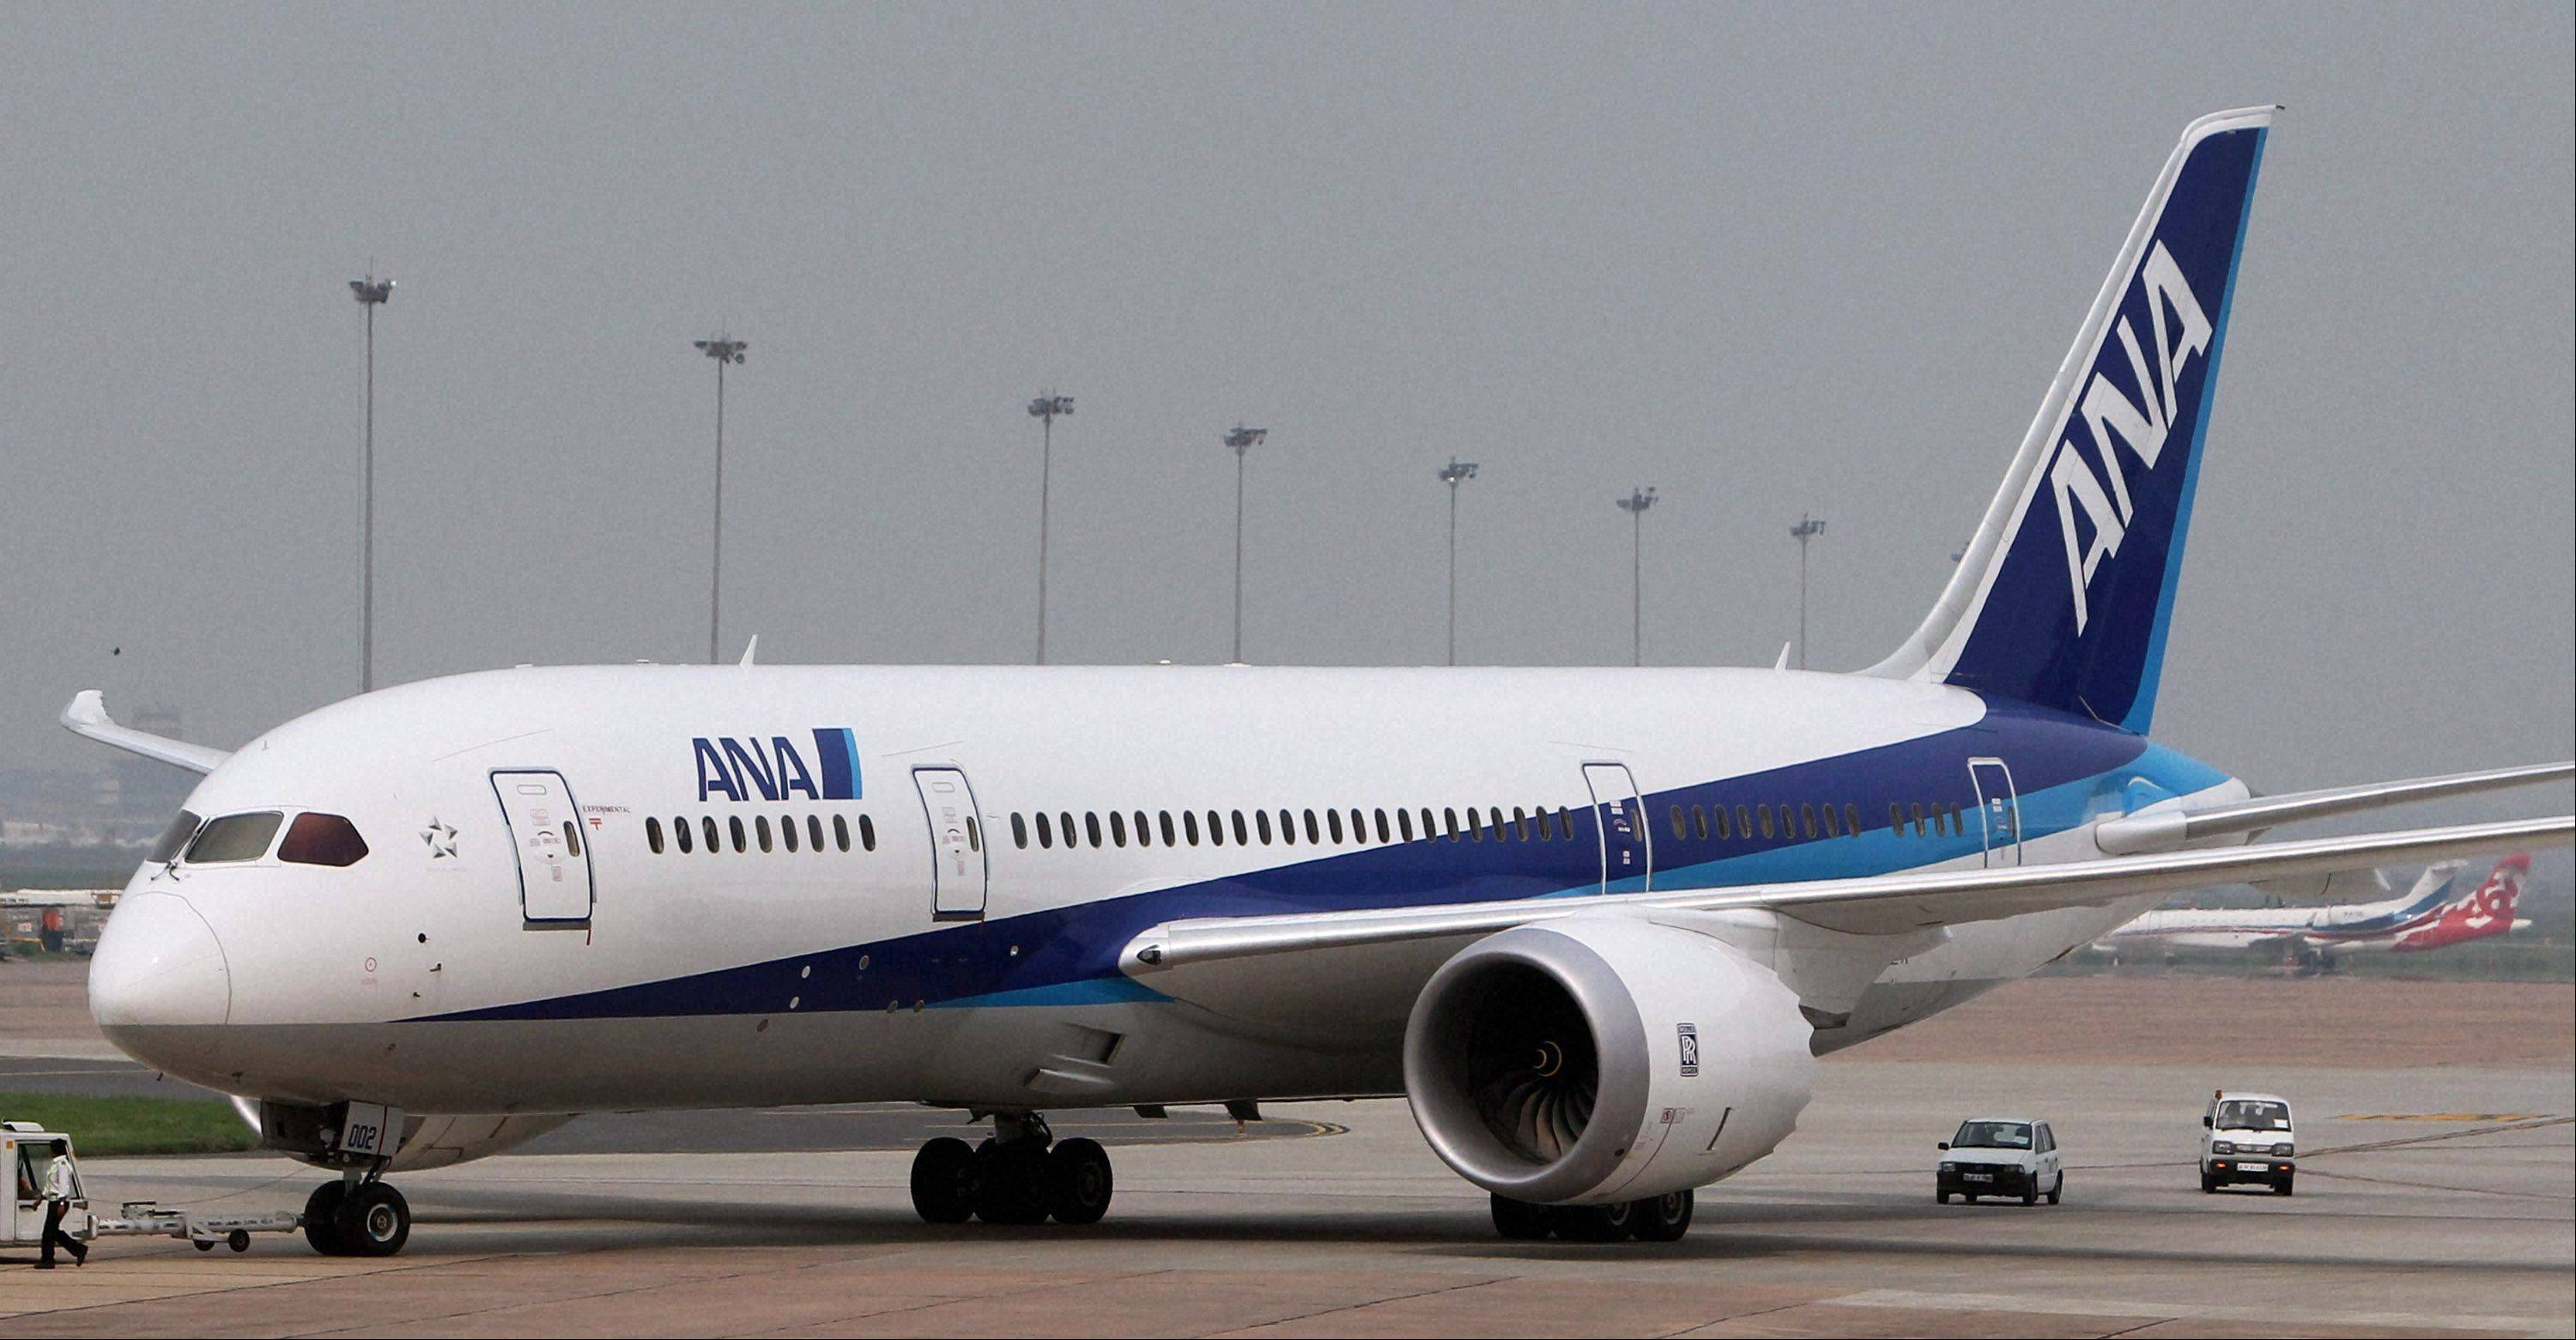 A Japanese carrier�s Dreamliner had engine trouble before takeoff Wednesday, a day after a rival airline had a problem on another 787 plane.